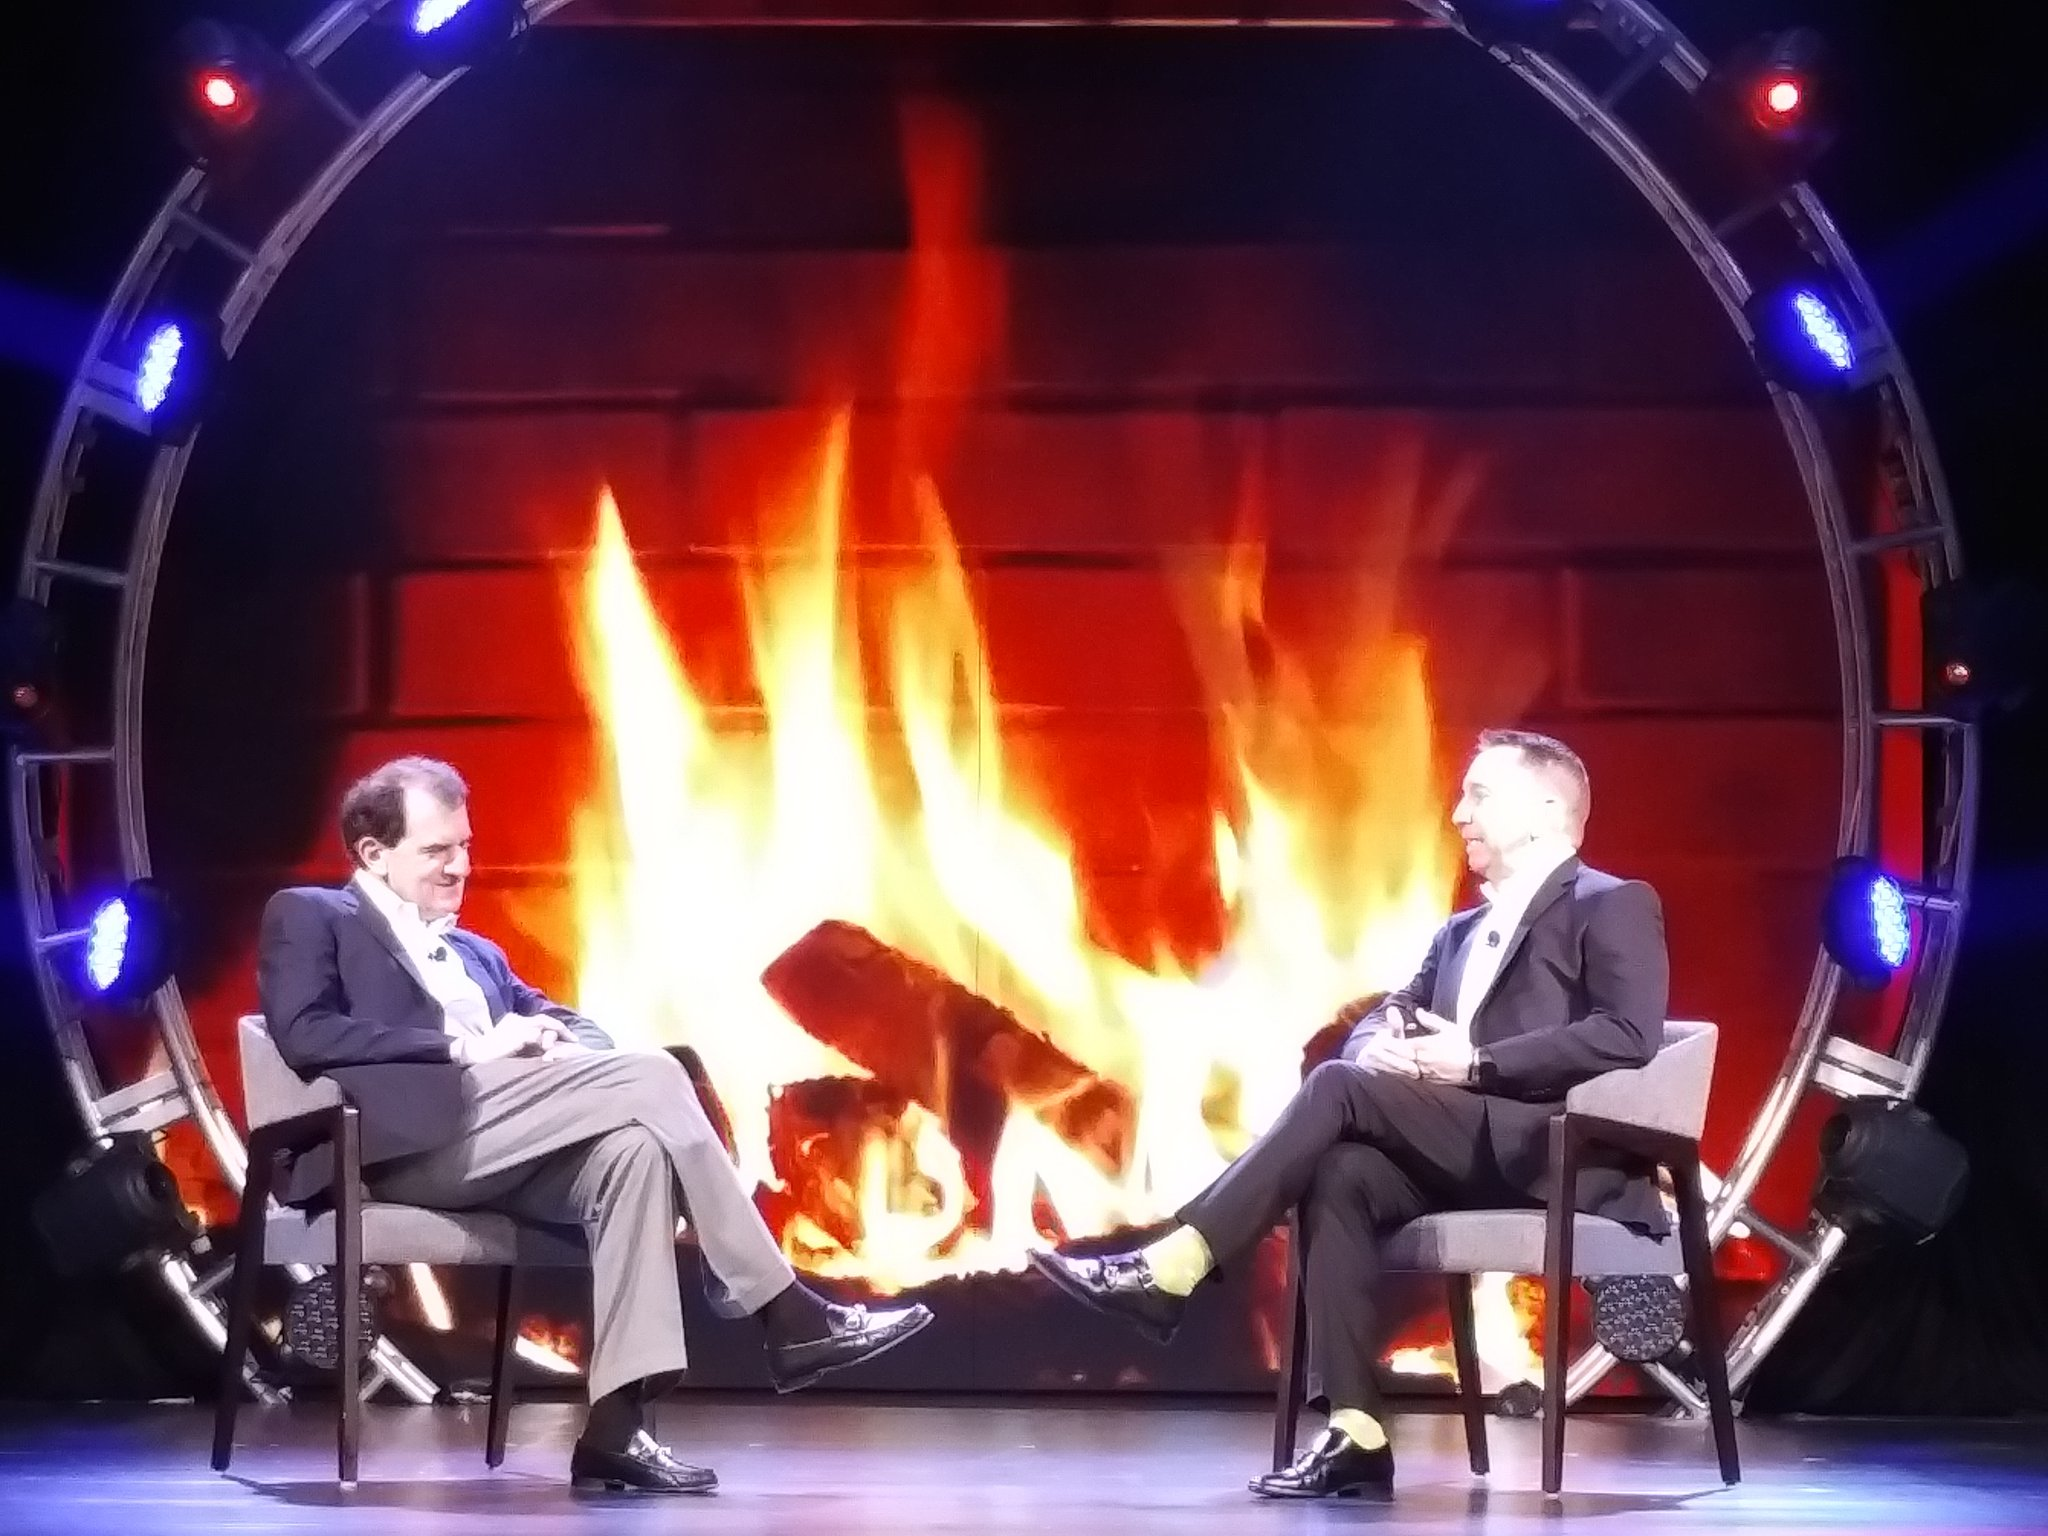 Next up - A chat between Douglas and Corbin on the power of the channel. #MonsterFireSideChat #CenturyLinkAscend https://t.co/JlIlDE6nHb